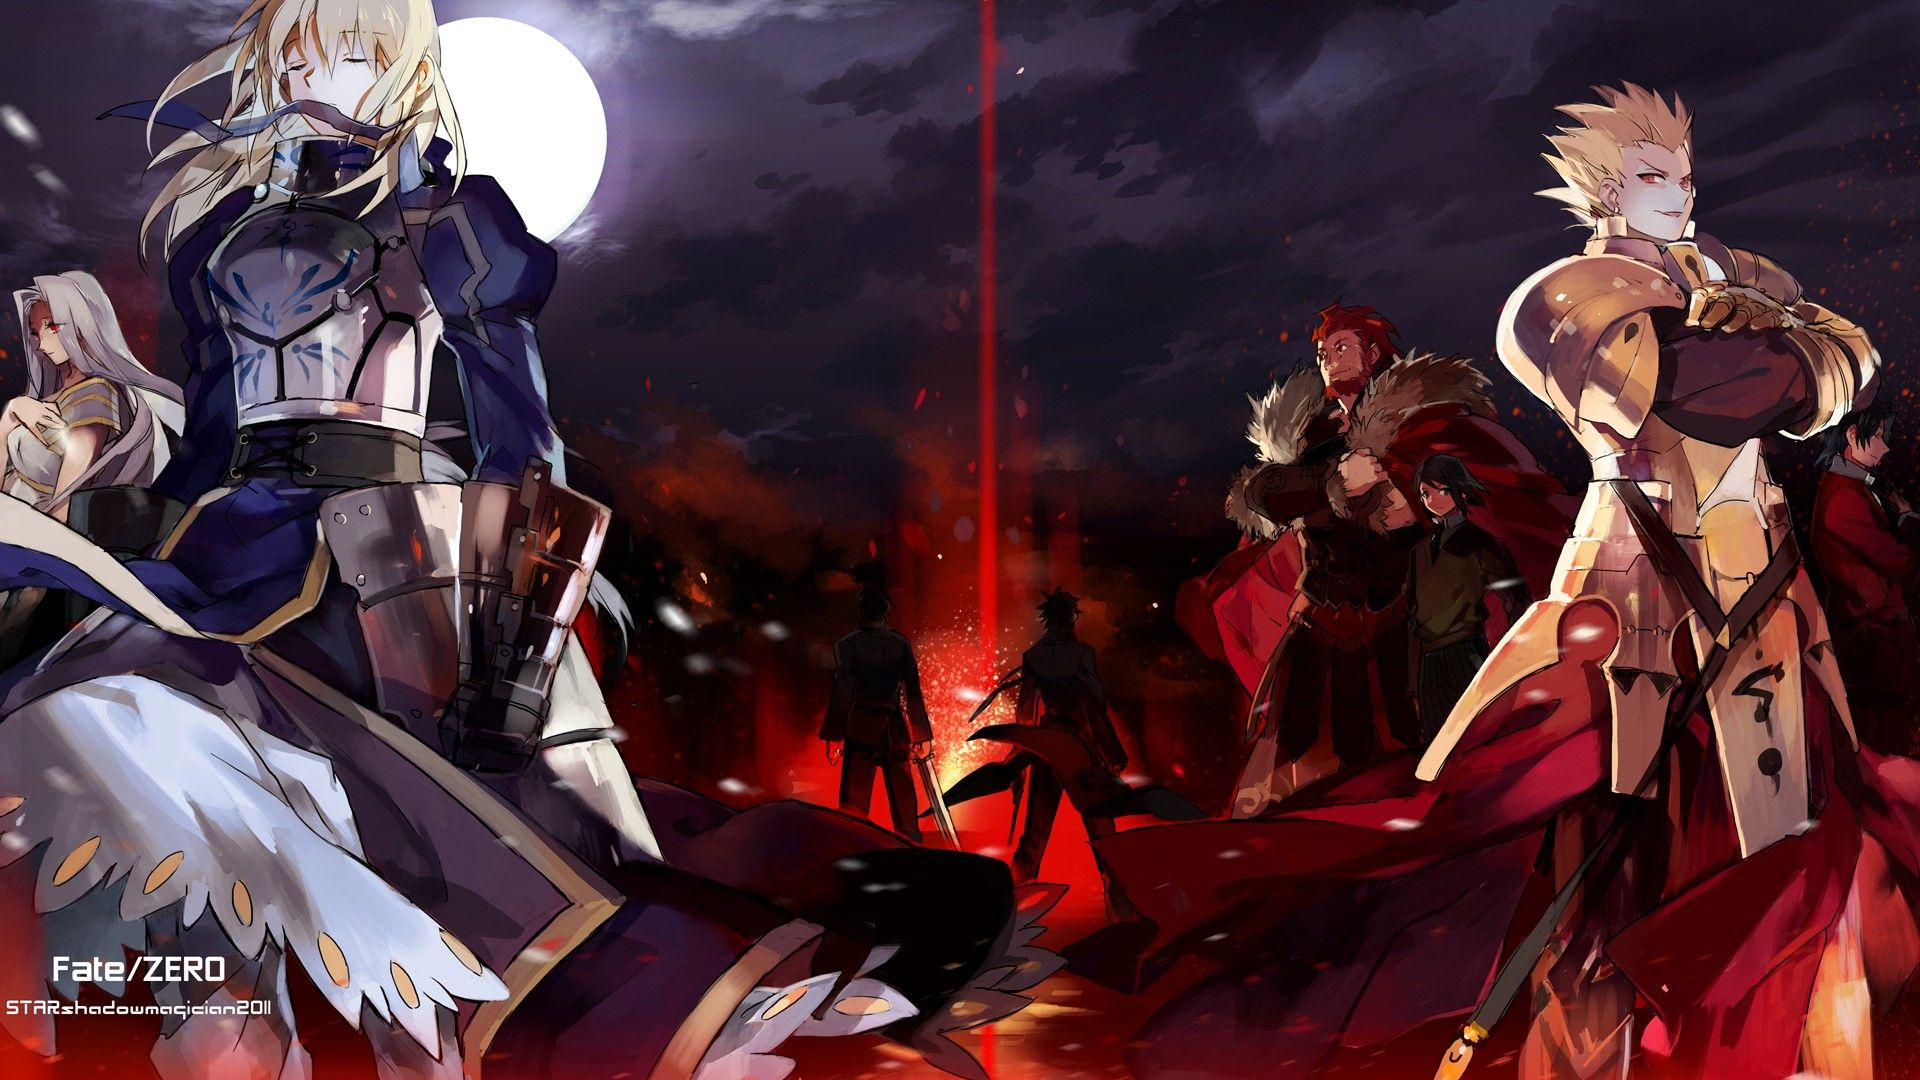 Fate Stay Night Fate Zero Fatestay Night Y Zero Wallpaper